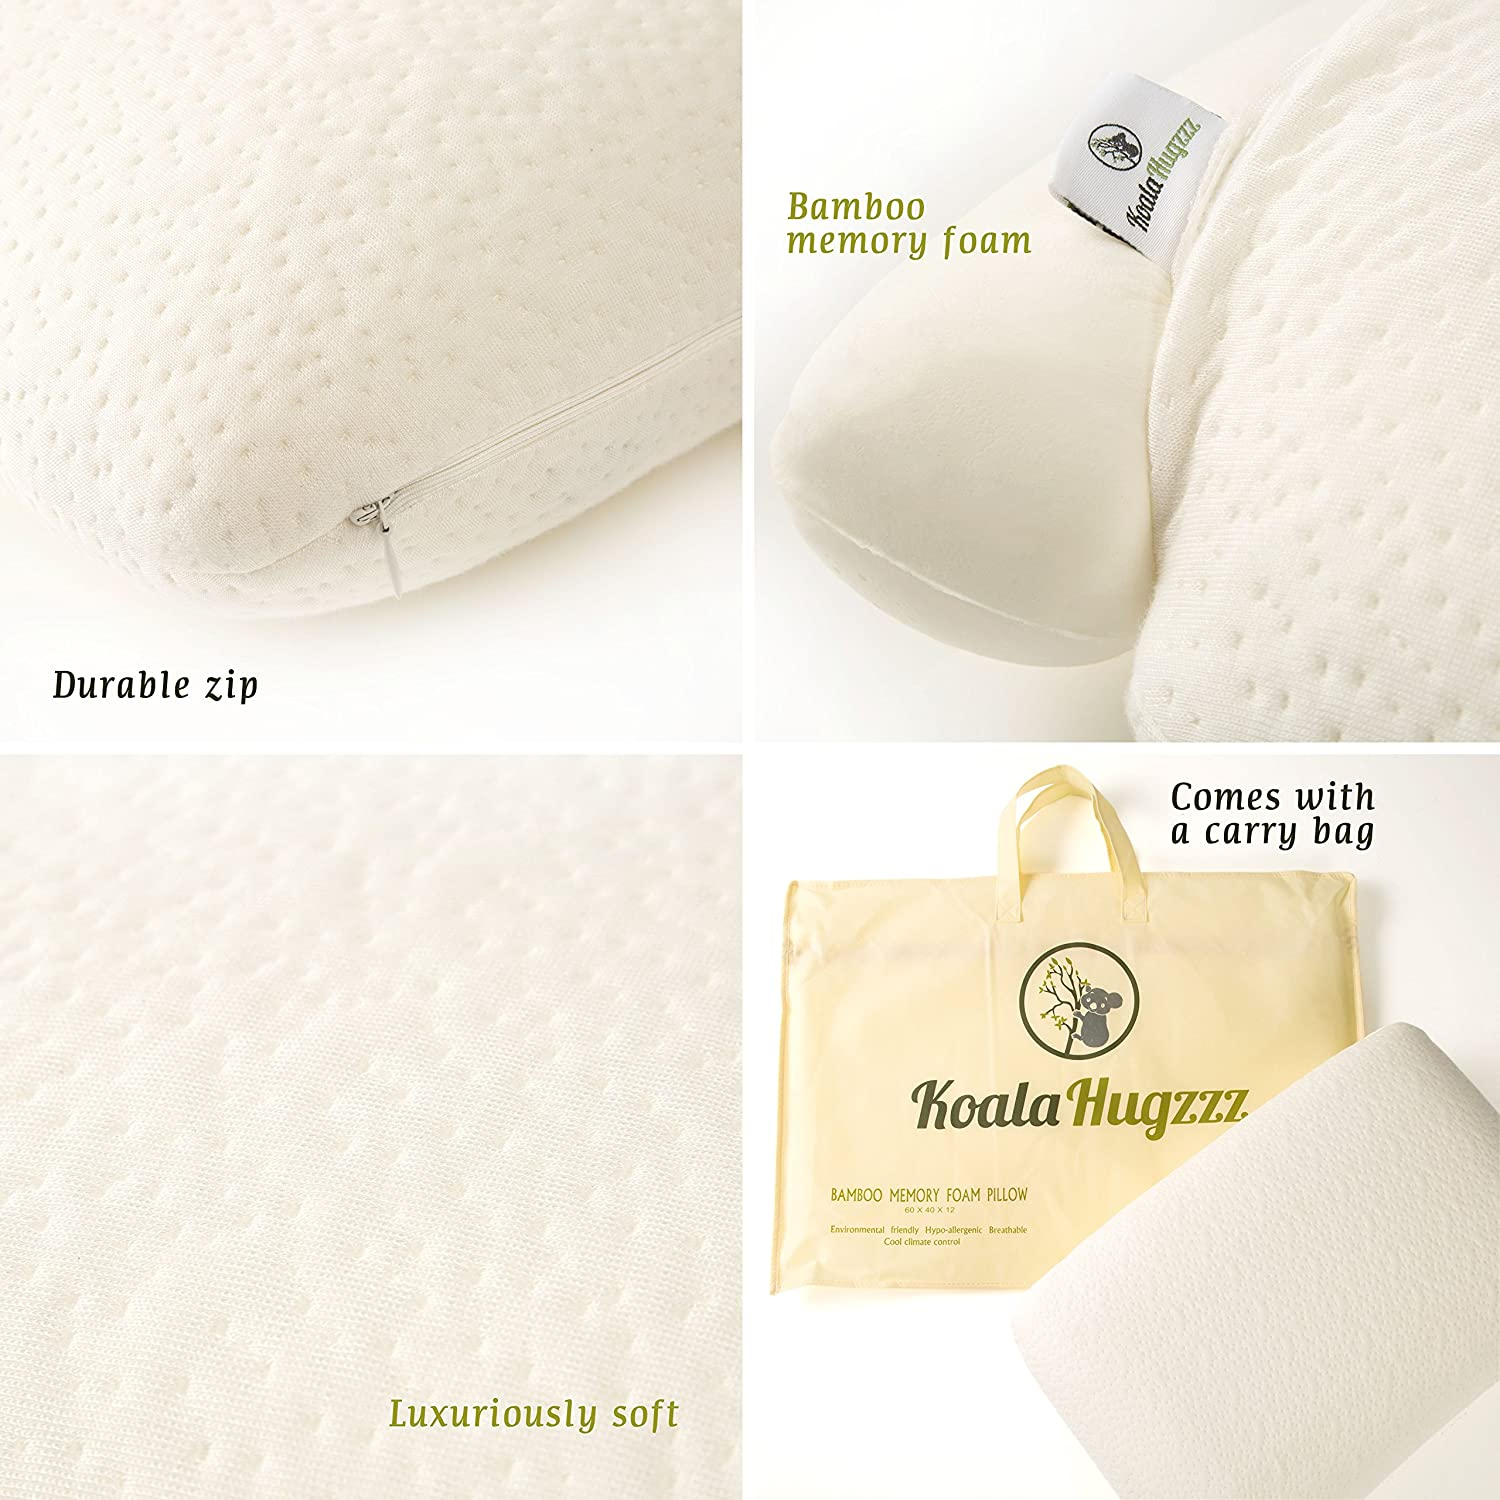 premium bamboo memory foam pillow with bamboo coolmax cover luxury memory foam pillow adjustable orthopaedic memory foam pillow with viscose rayon cover